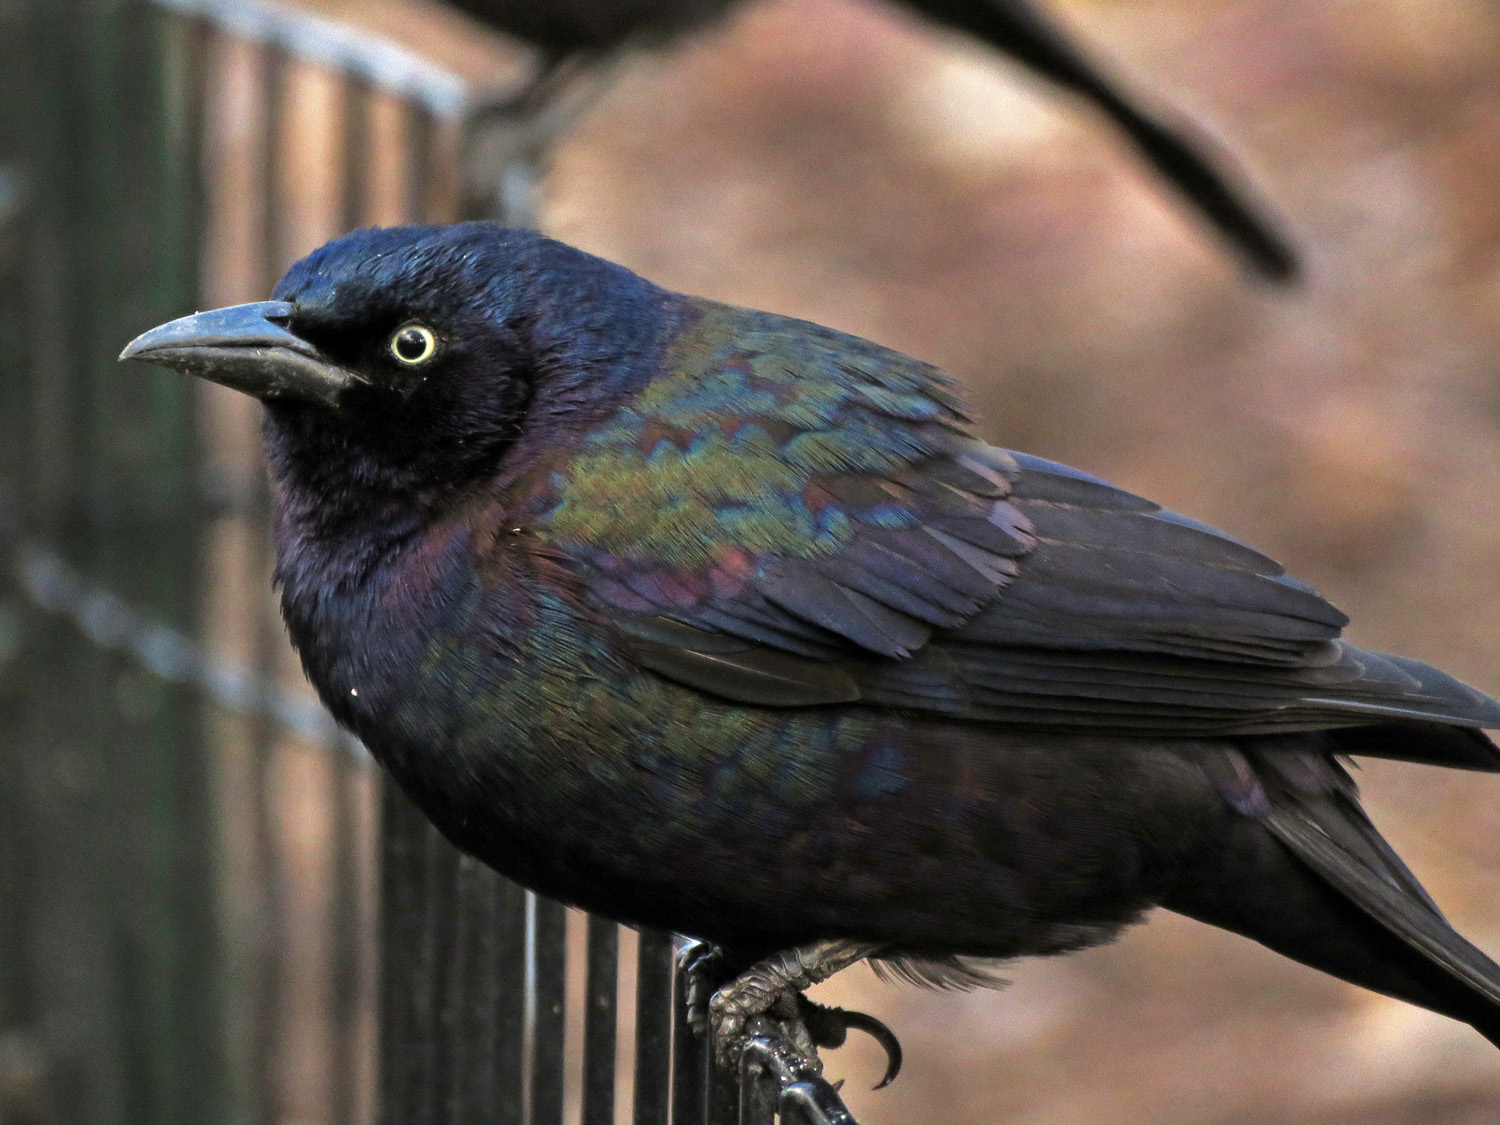 Common grackle, the Ramble, Central Park, March 31, 2019